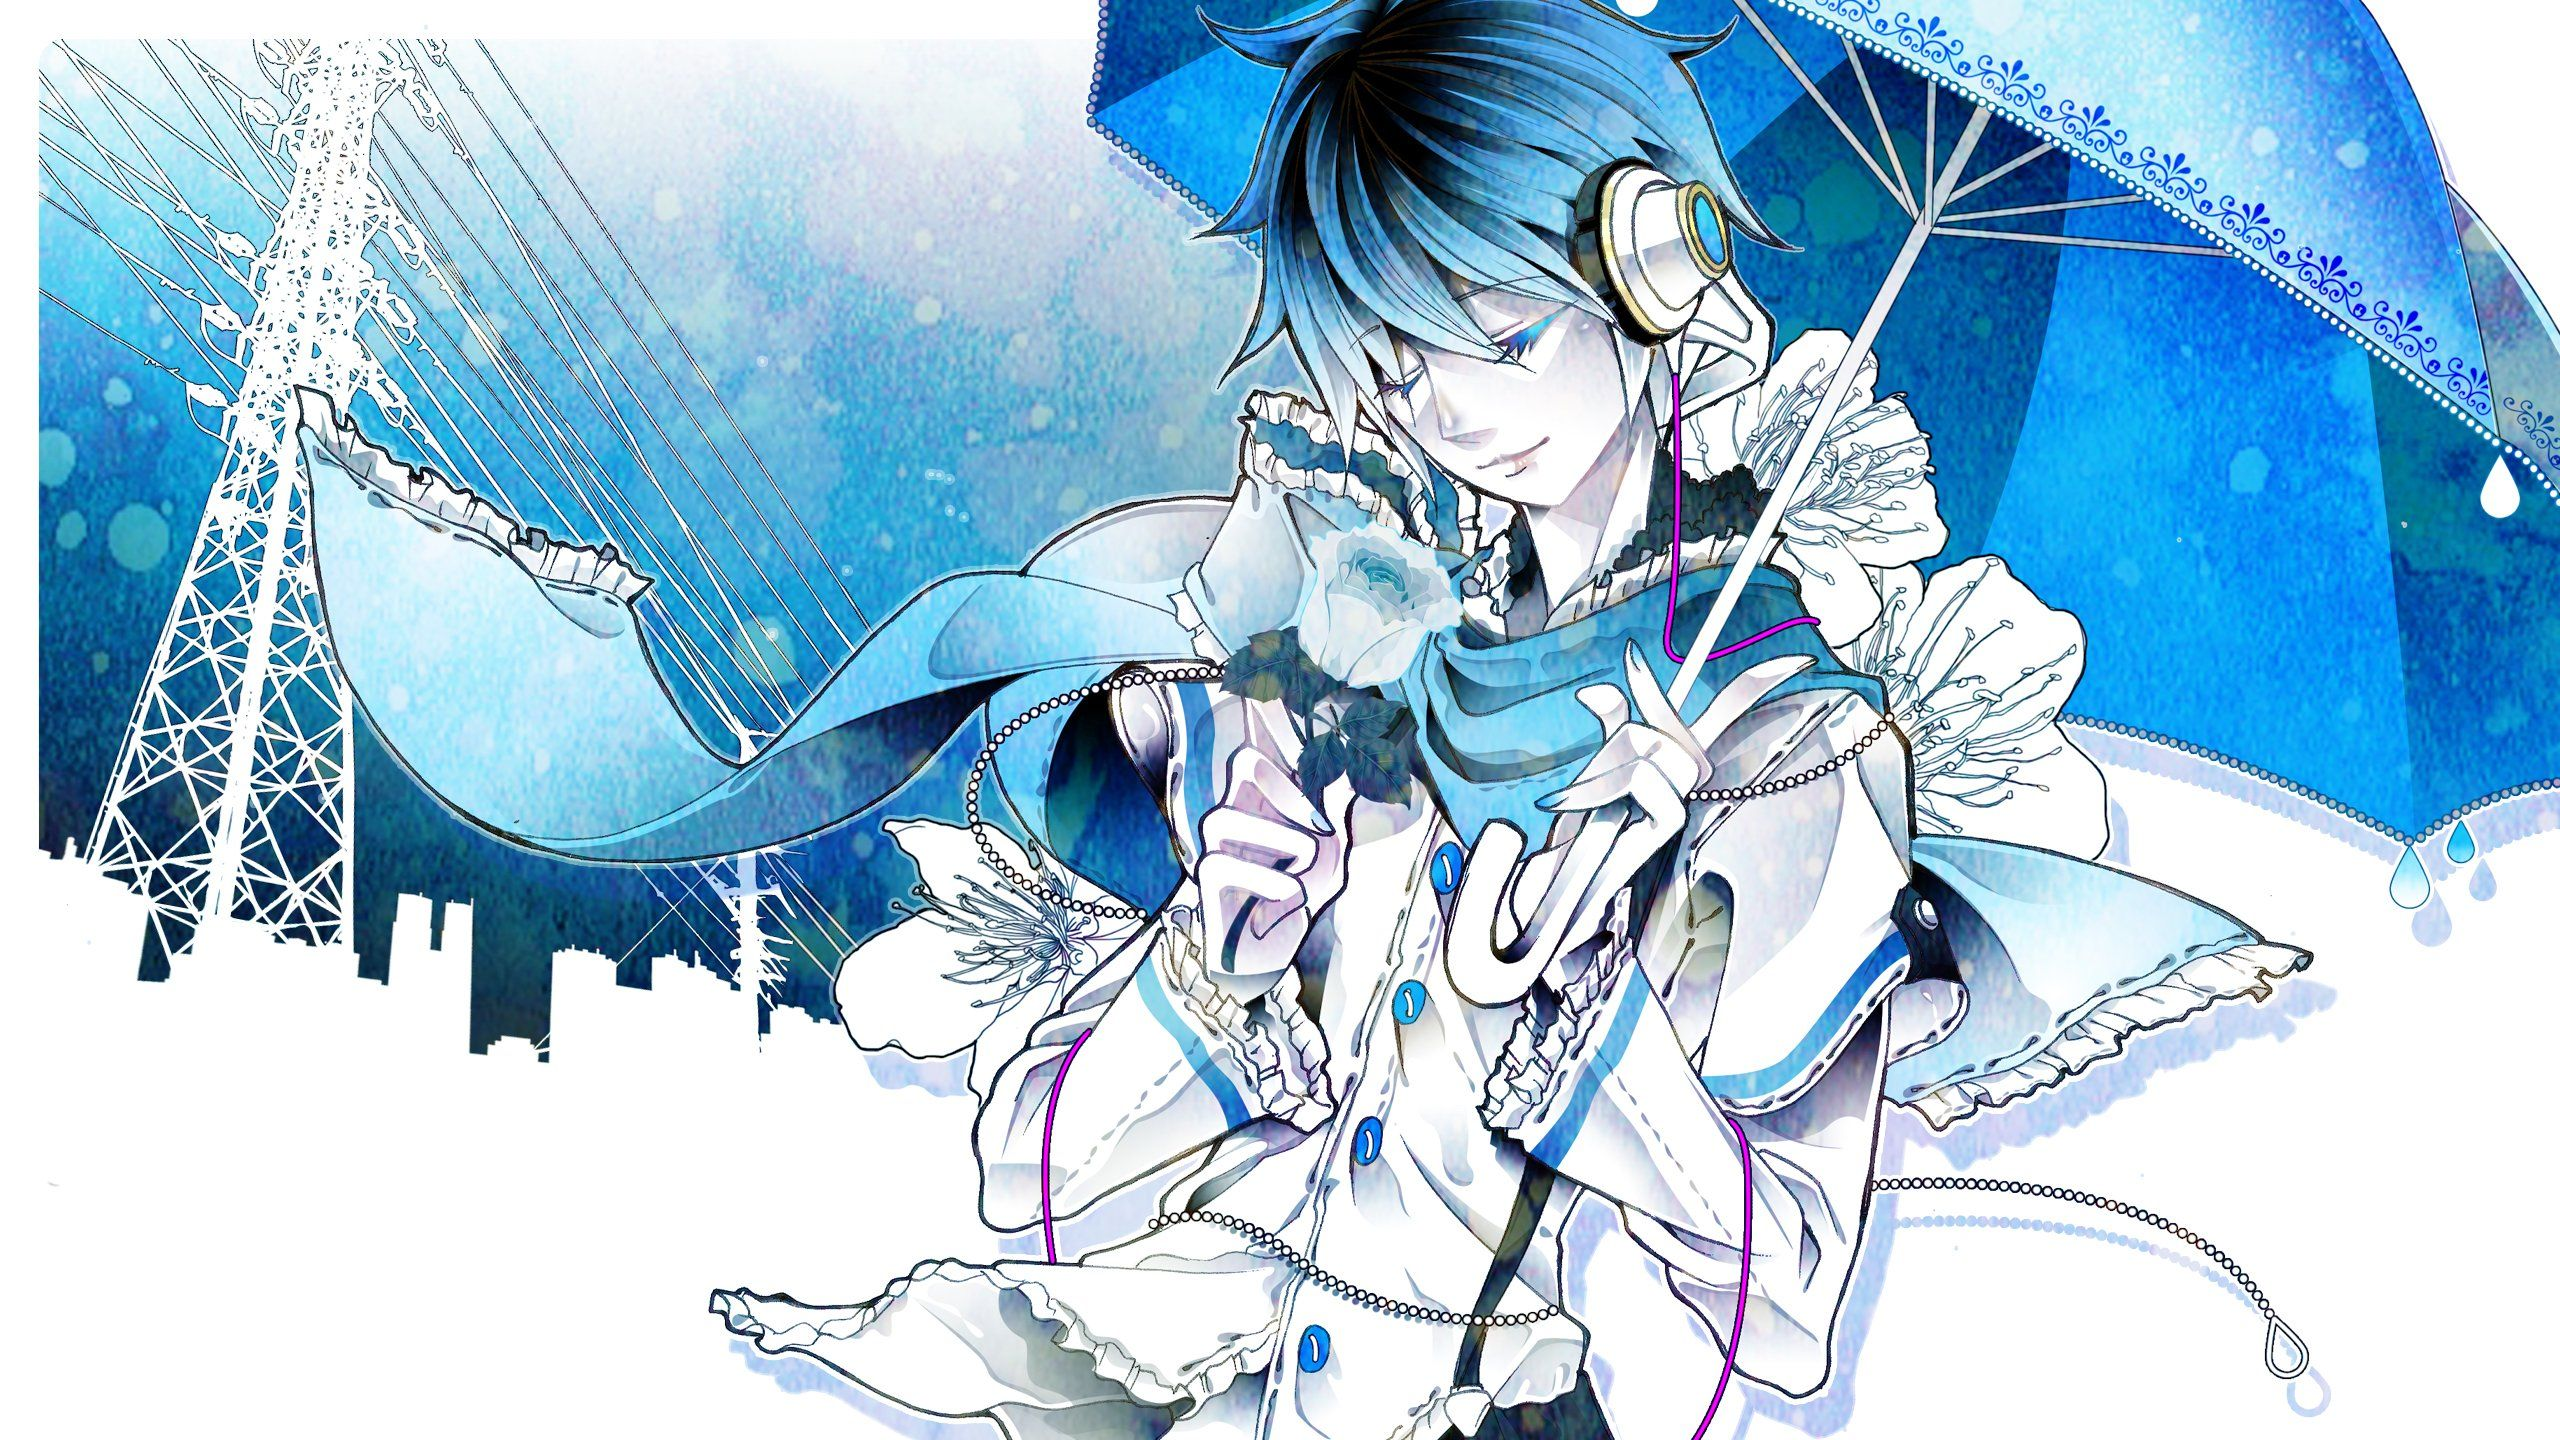 HD Kaito Vocaloid Backgrounds | Wallpapers, Backgrounds ...